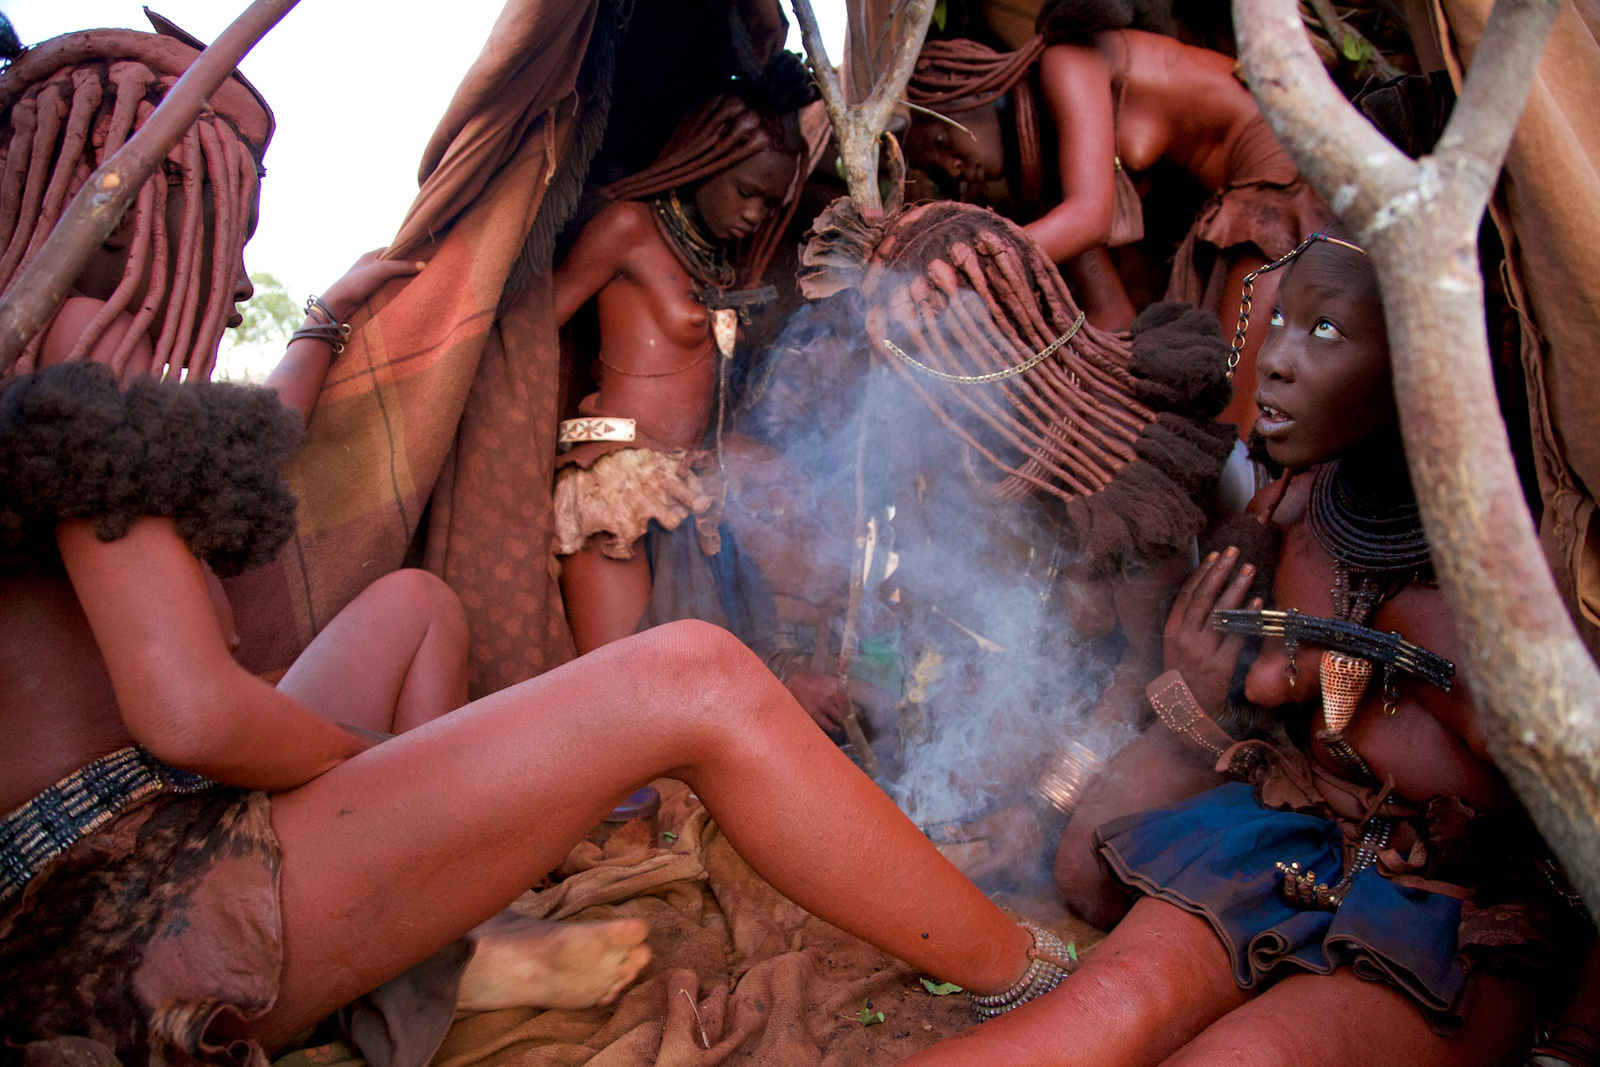 filled-schoolgirl-pictures-of-african-tribal-women-having-sex-black-topless